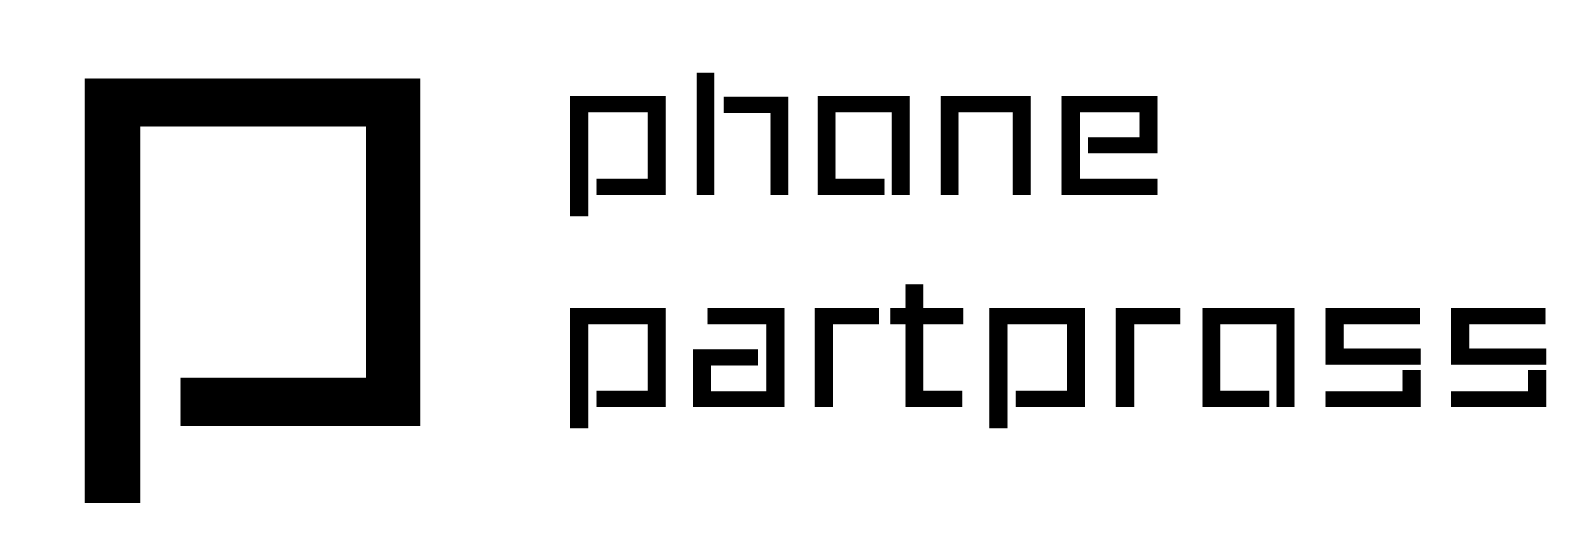 phonepartpross